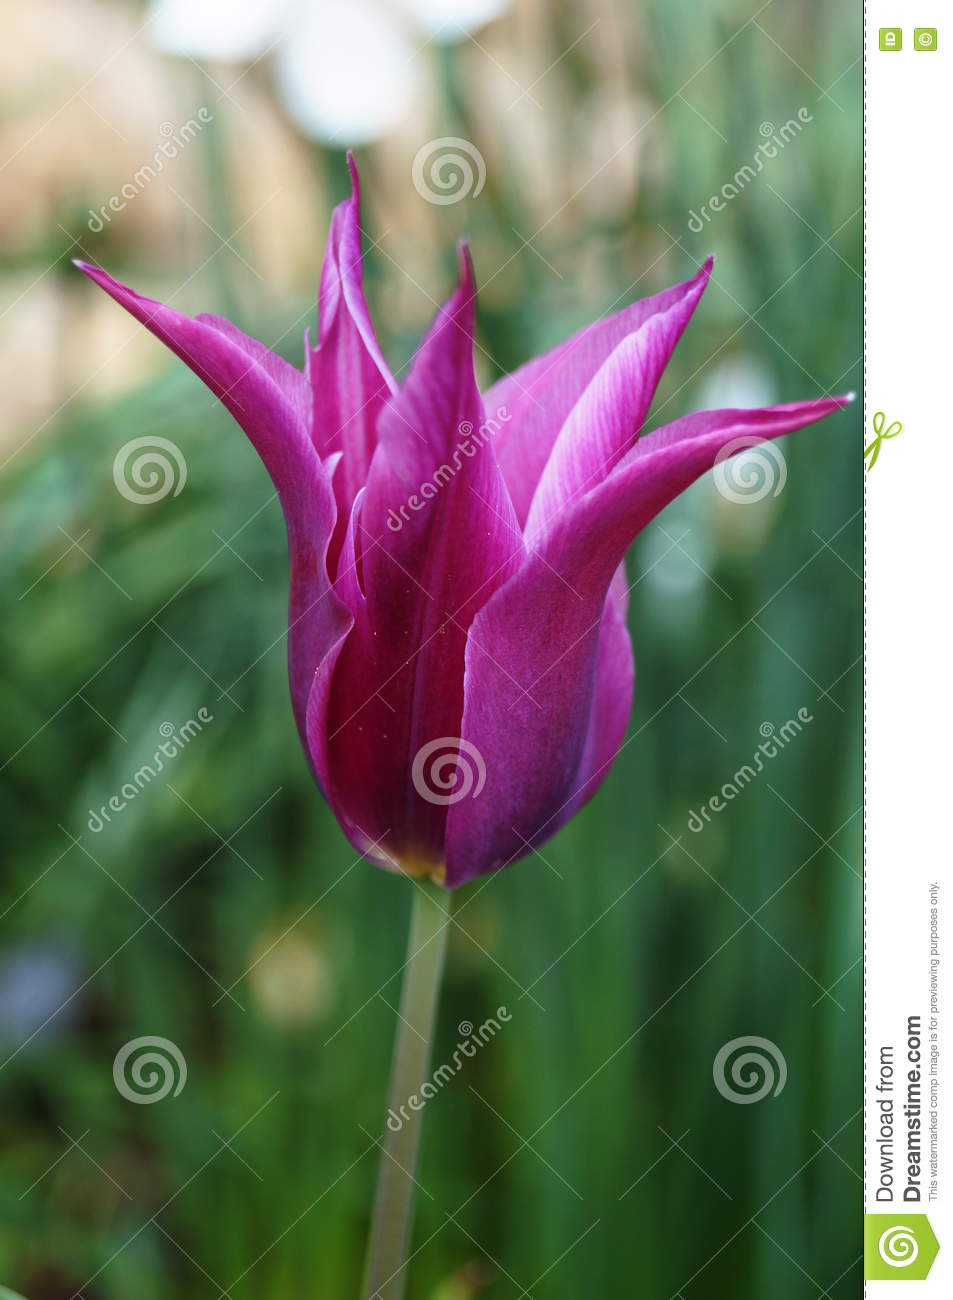 Flower Tulip With Spiky Petals Closeup Stock Photo.